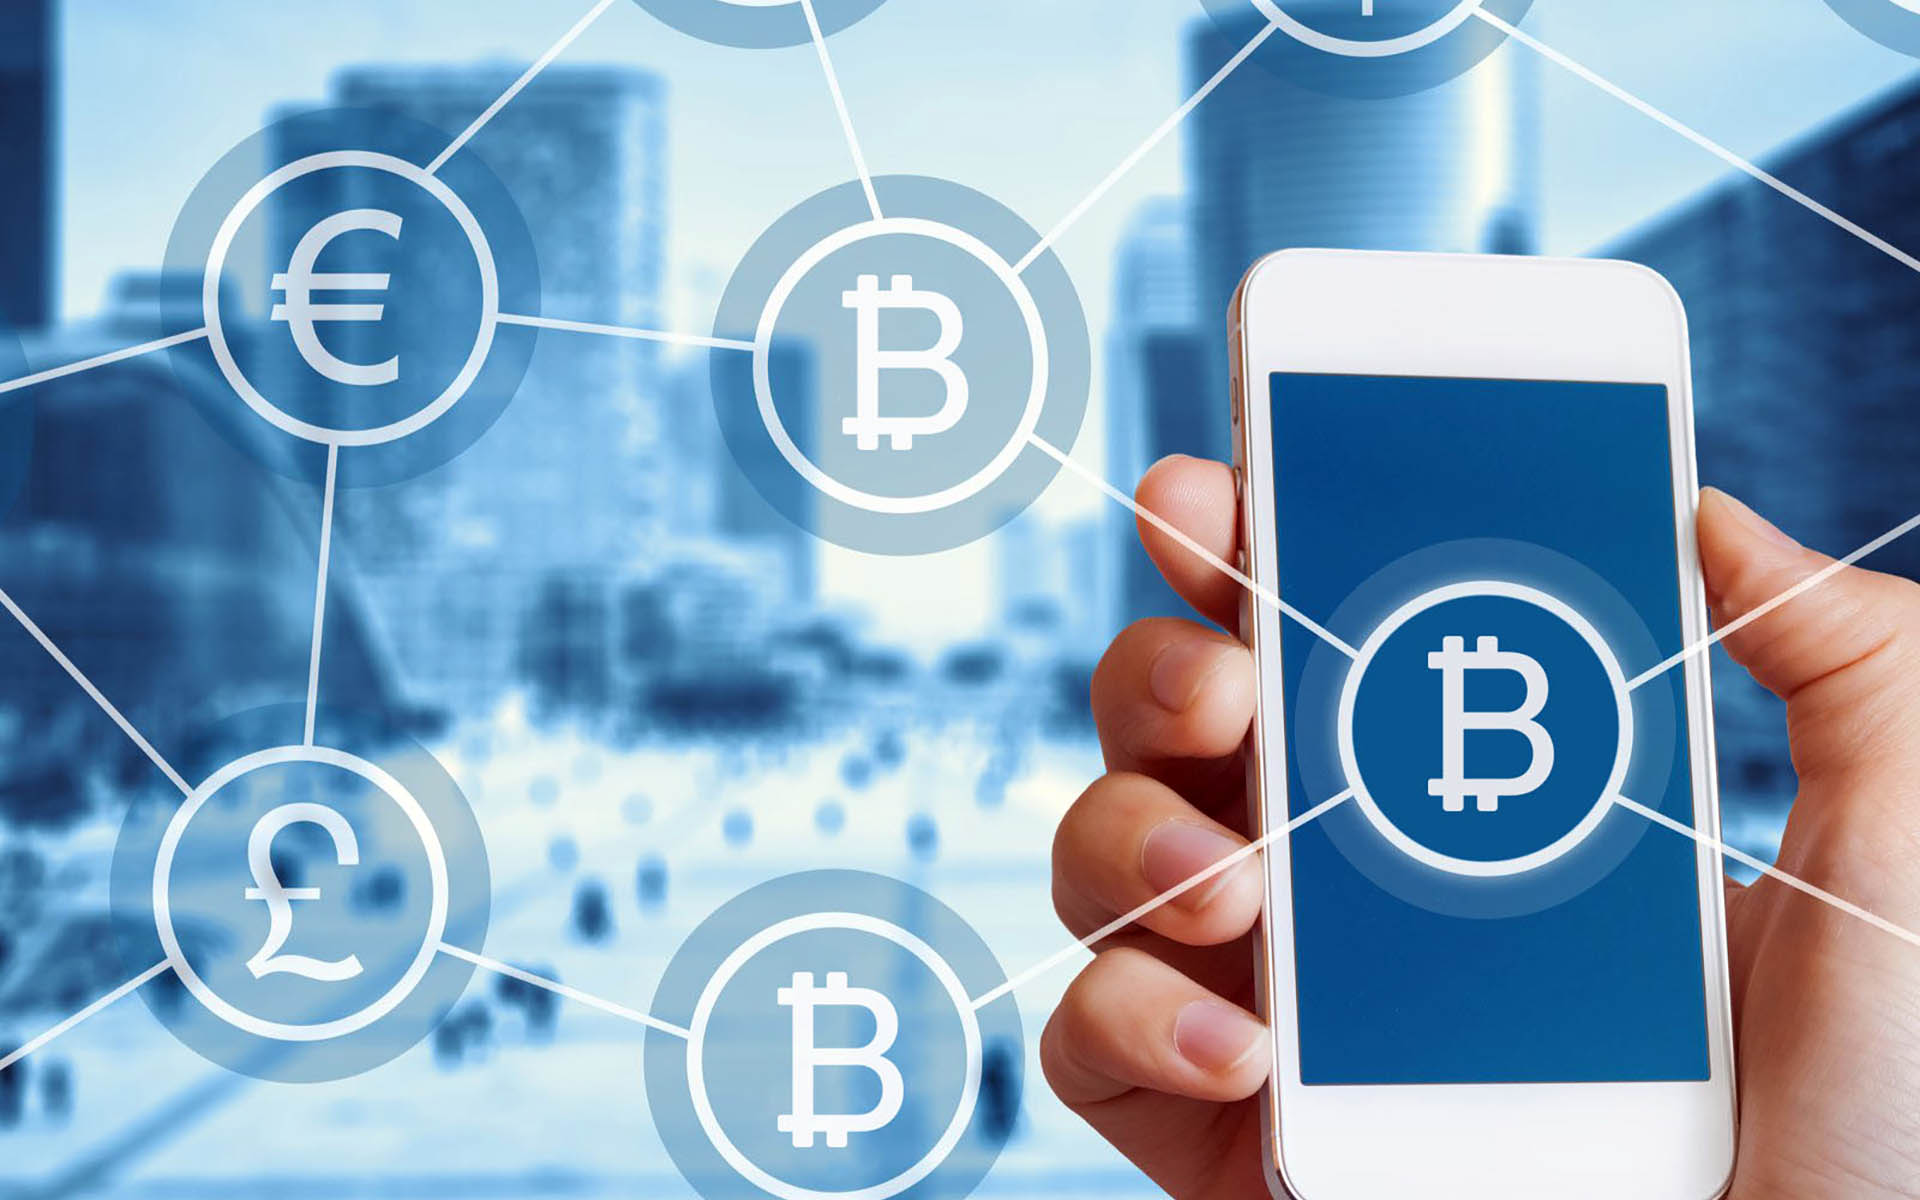 Accept Bitcoin Payments Mistakes You